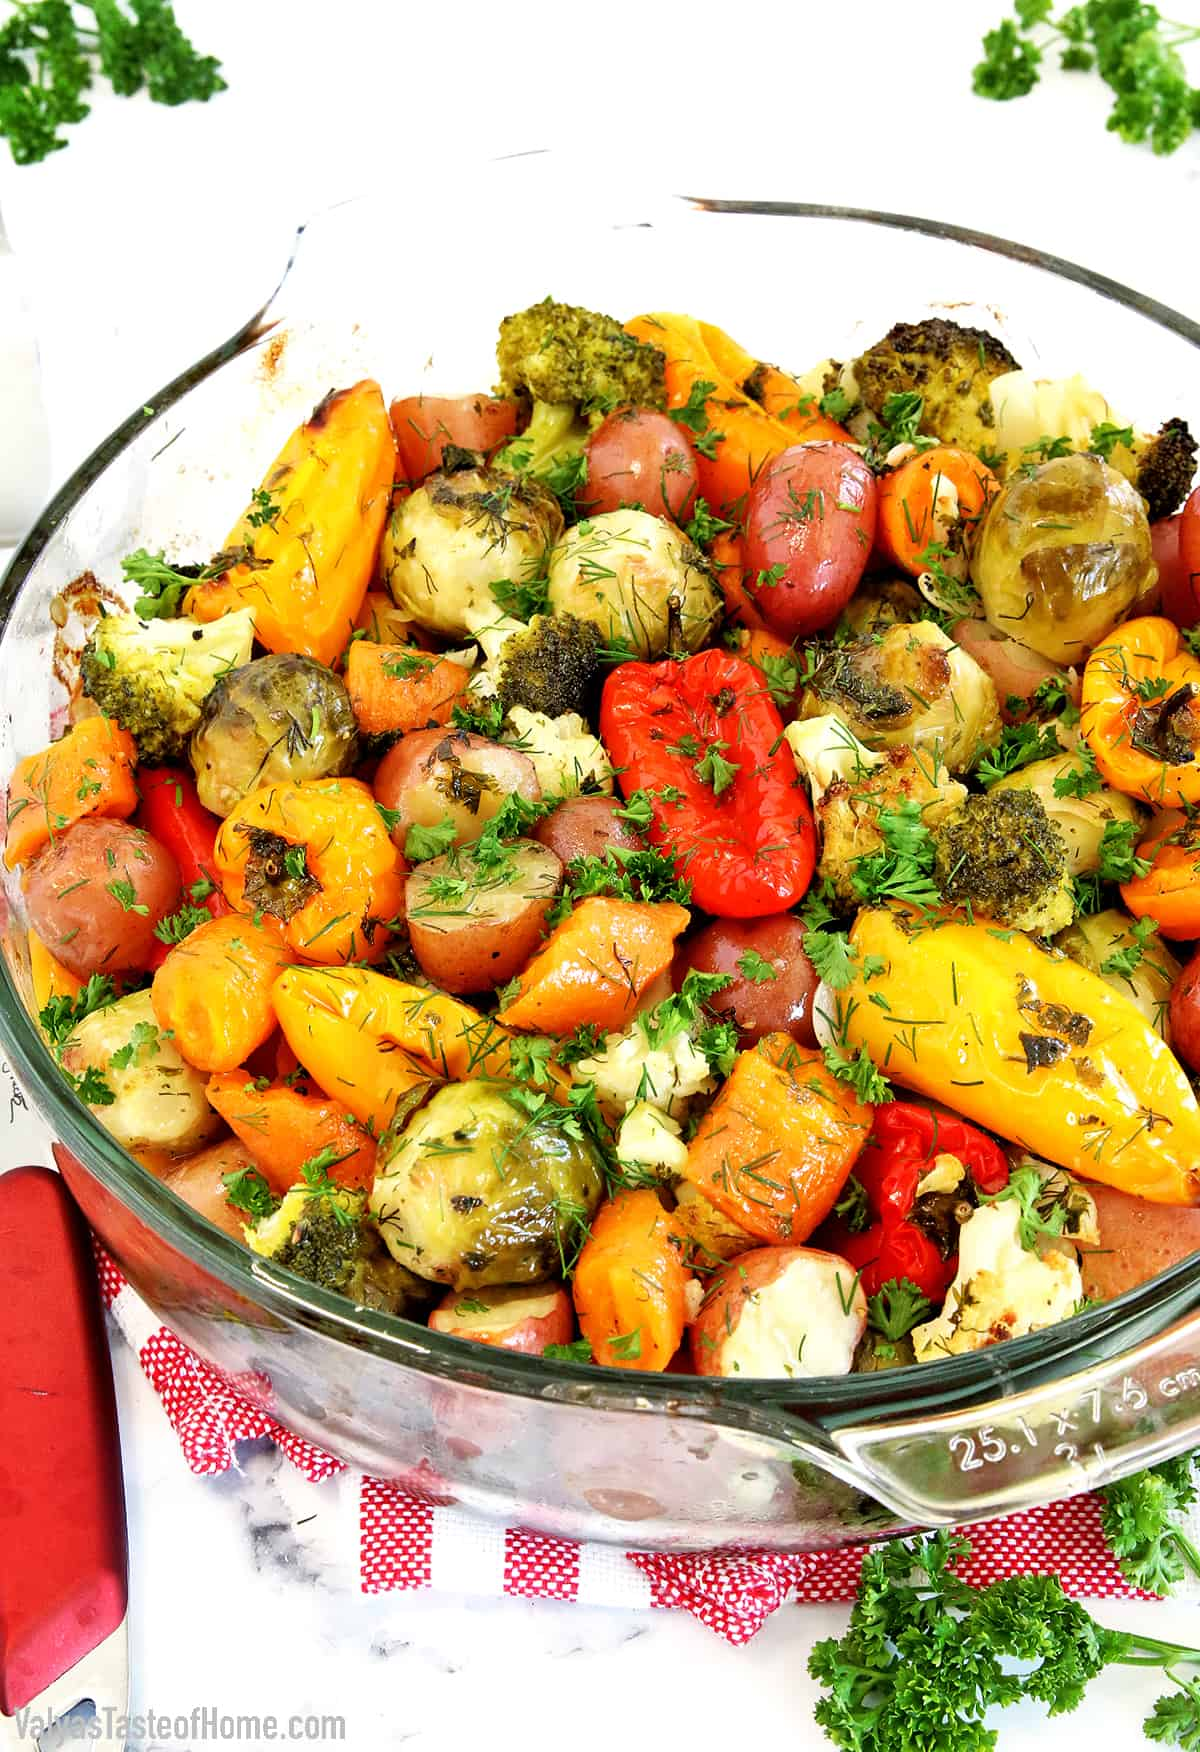 The name says it all! When I say simple, it is effortless, with just a few ingredients. This Simple Roasted Mixed Veggie Recipe is really healthy and nutritious. It's one of those recipes that you can just throw all the ingredients into a bowl, add seasoning to taste, bake, and enjoy!